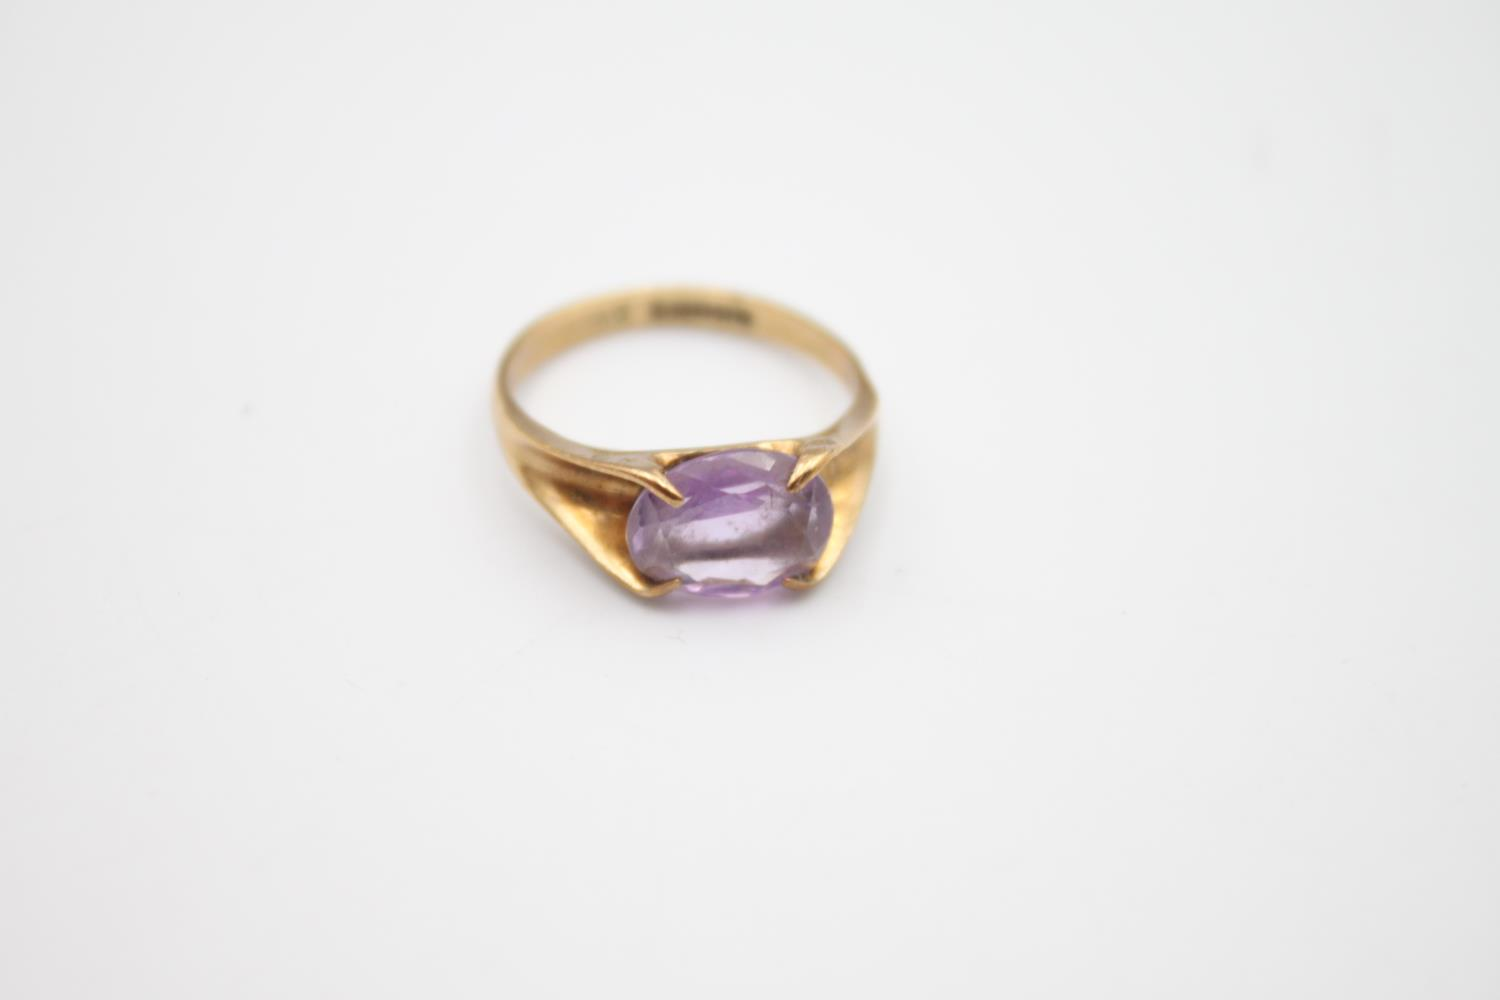 2 x 9ct gold amethyst rings inc modernist, solitaire 4.6g Size L & N - Image 2 of 6